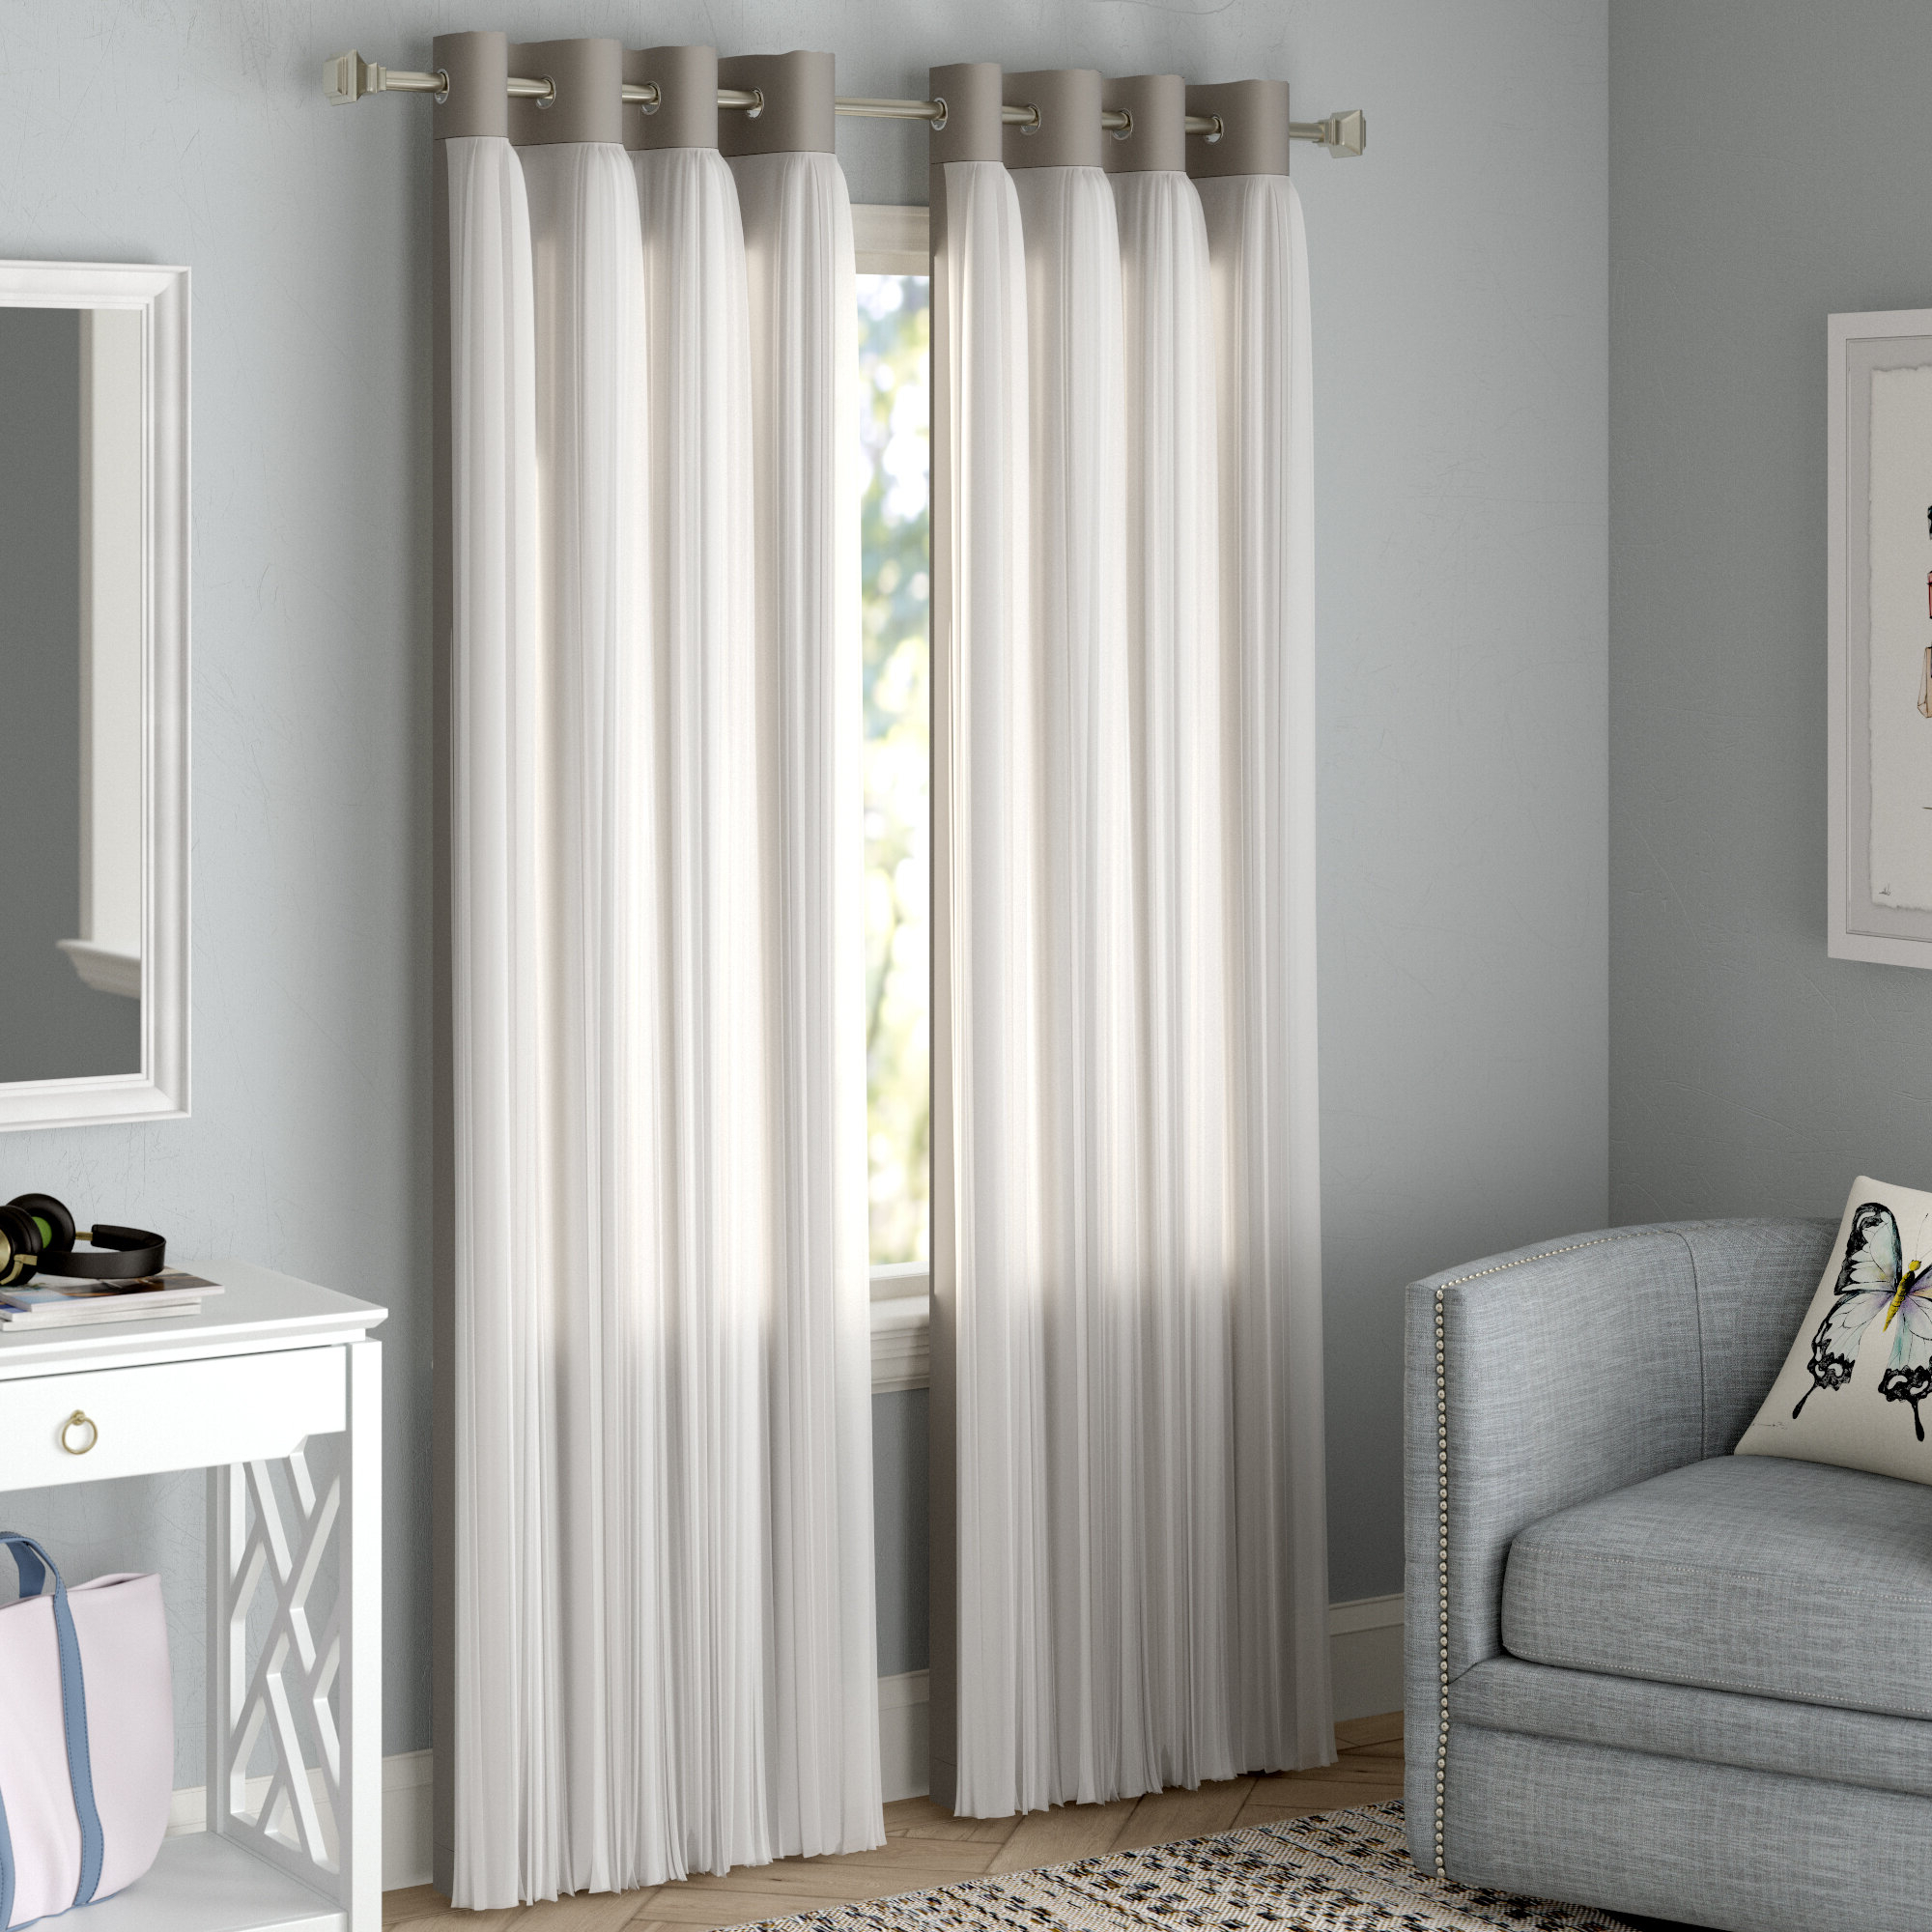 Brockham Solid Blackout Thermal Grommet Curtain Panels Regarding Widely Used Grommet Curtain Panels (View 7 of 20)